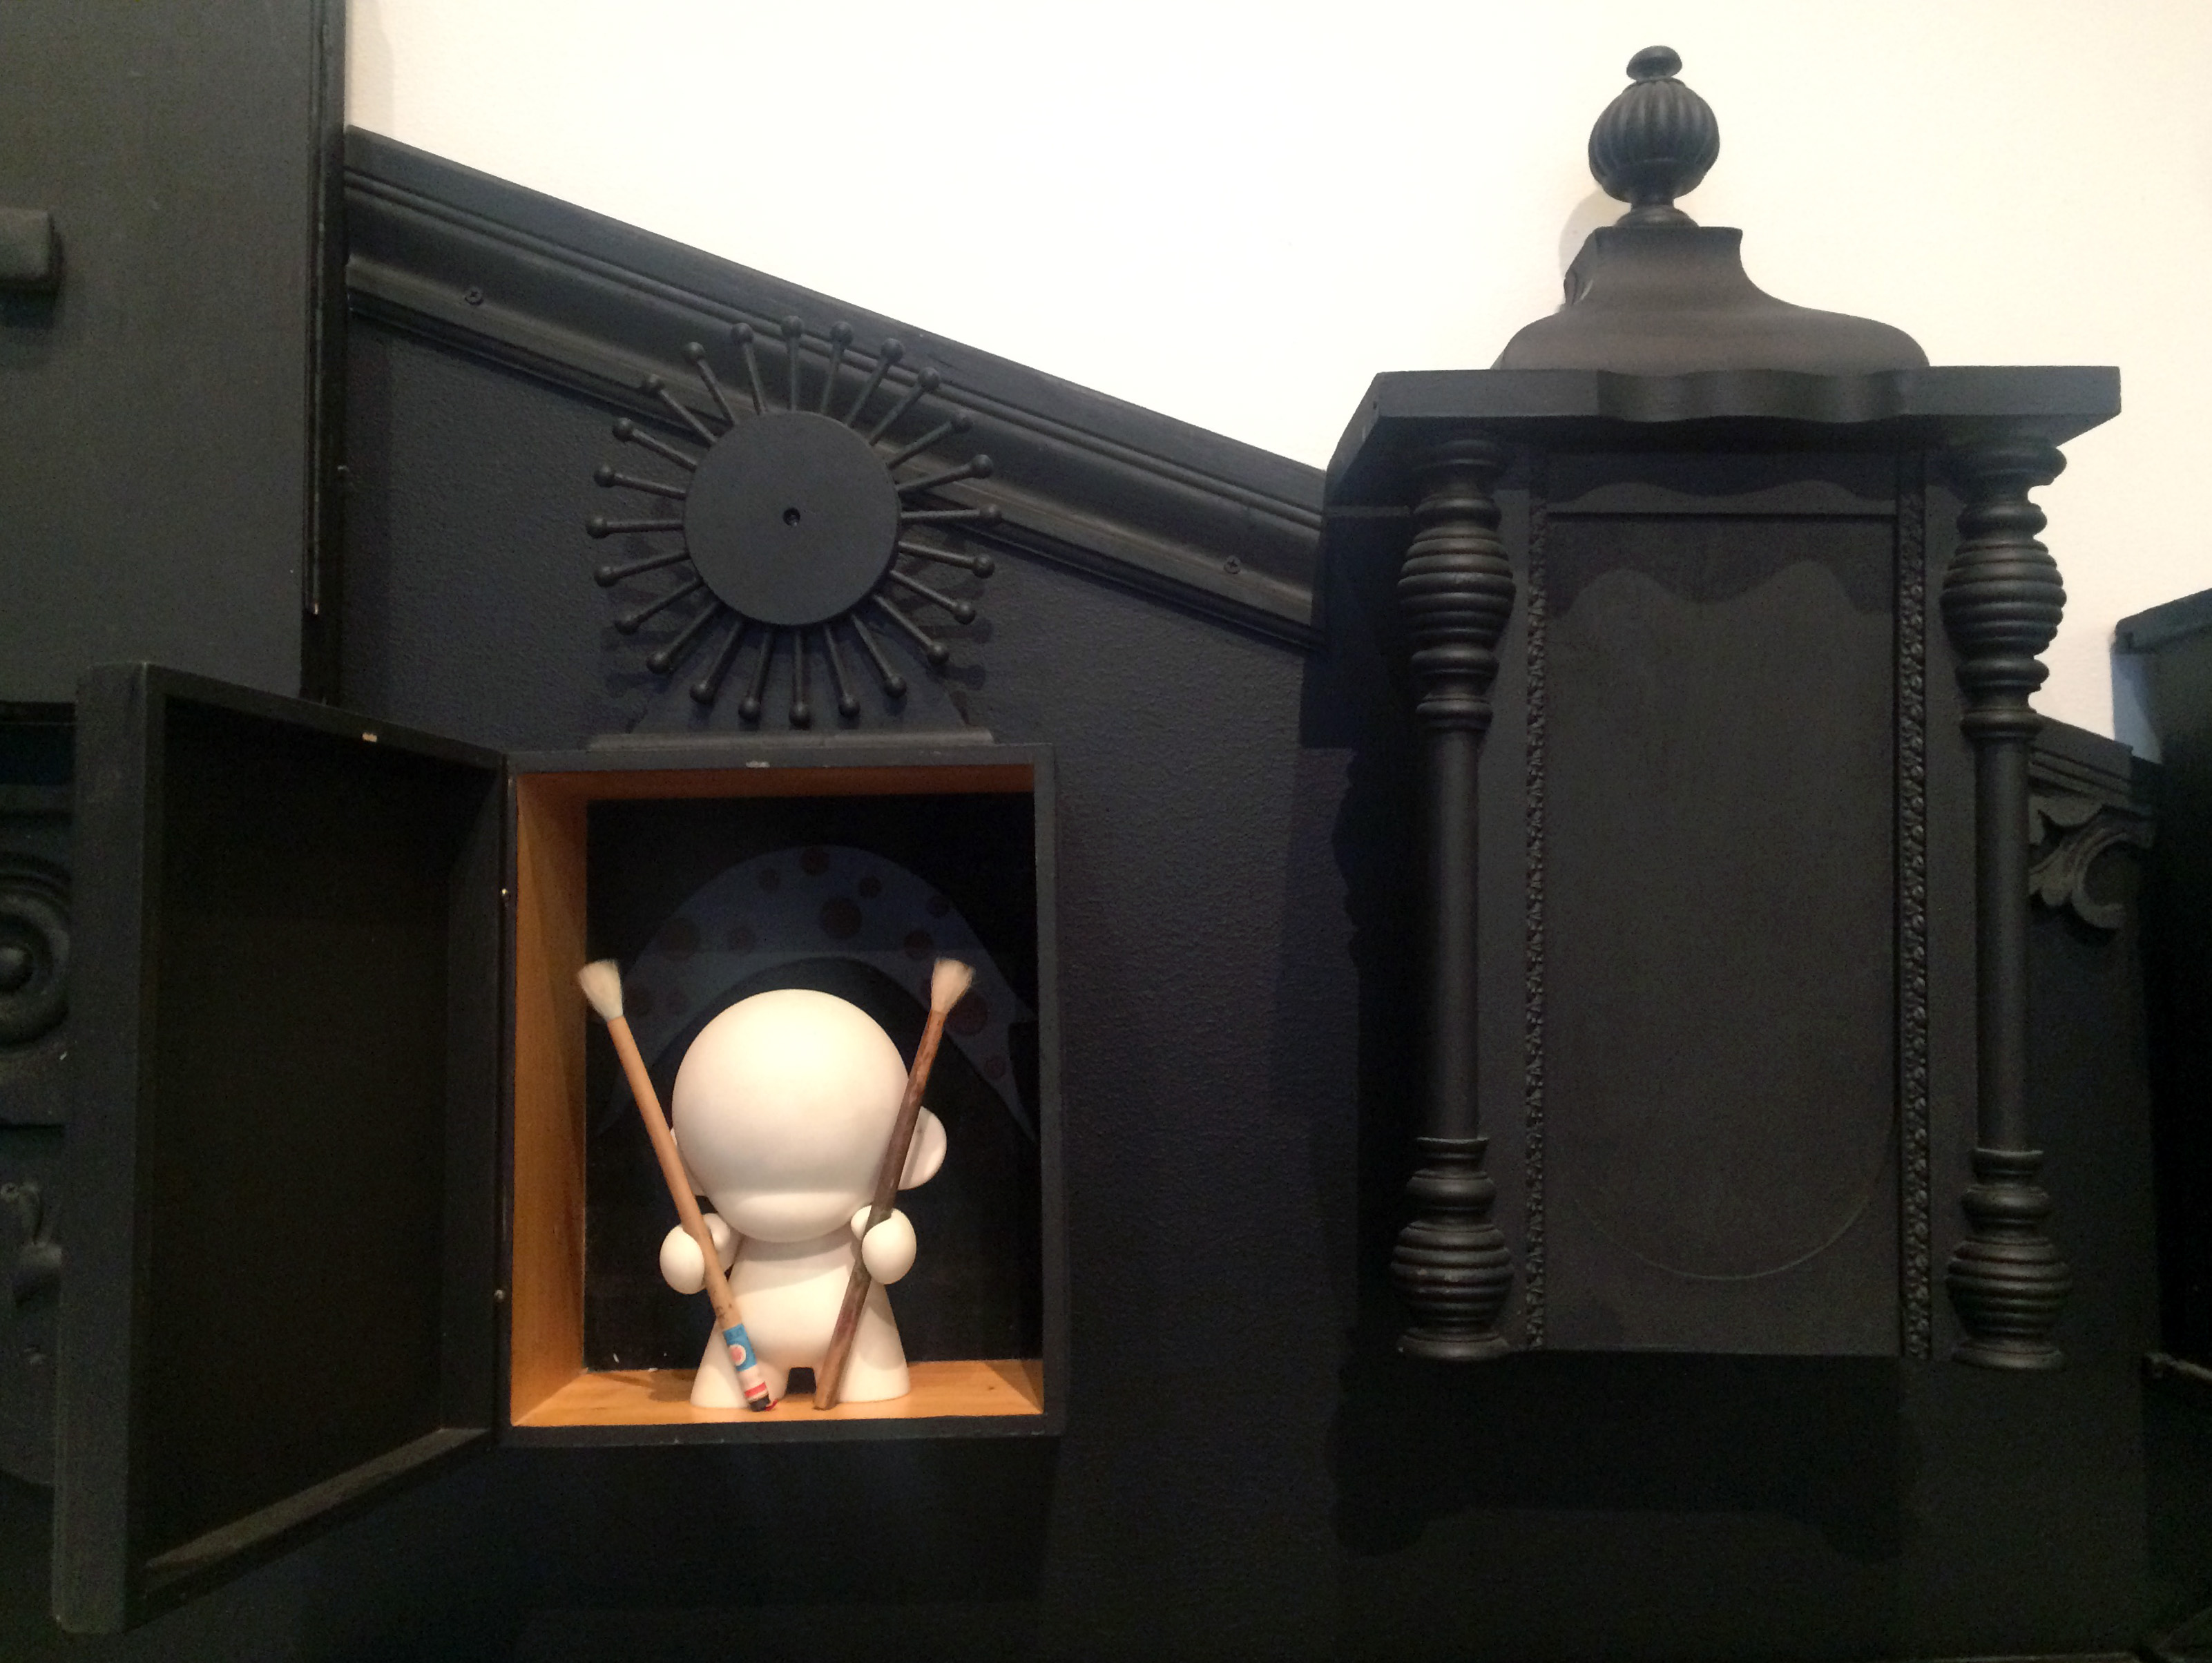 A detail of the Wunderkamer showing an open door with a small white sculptural figure.